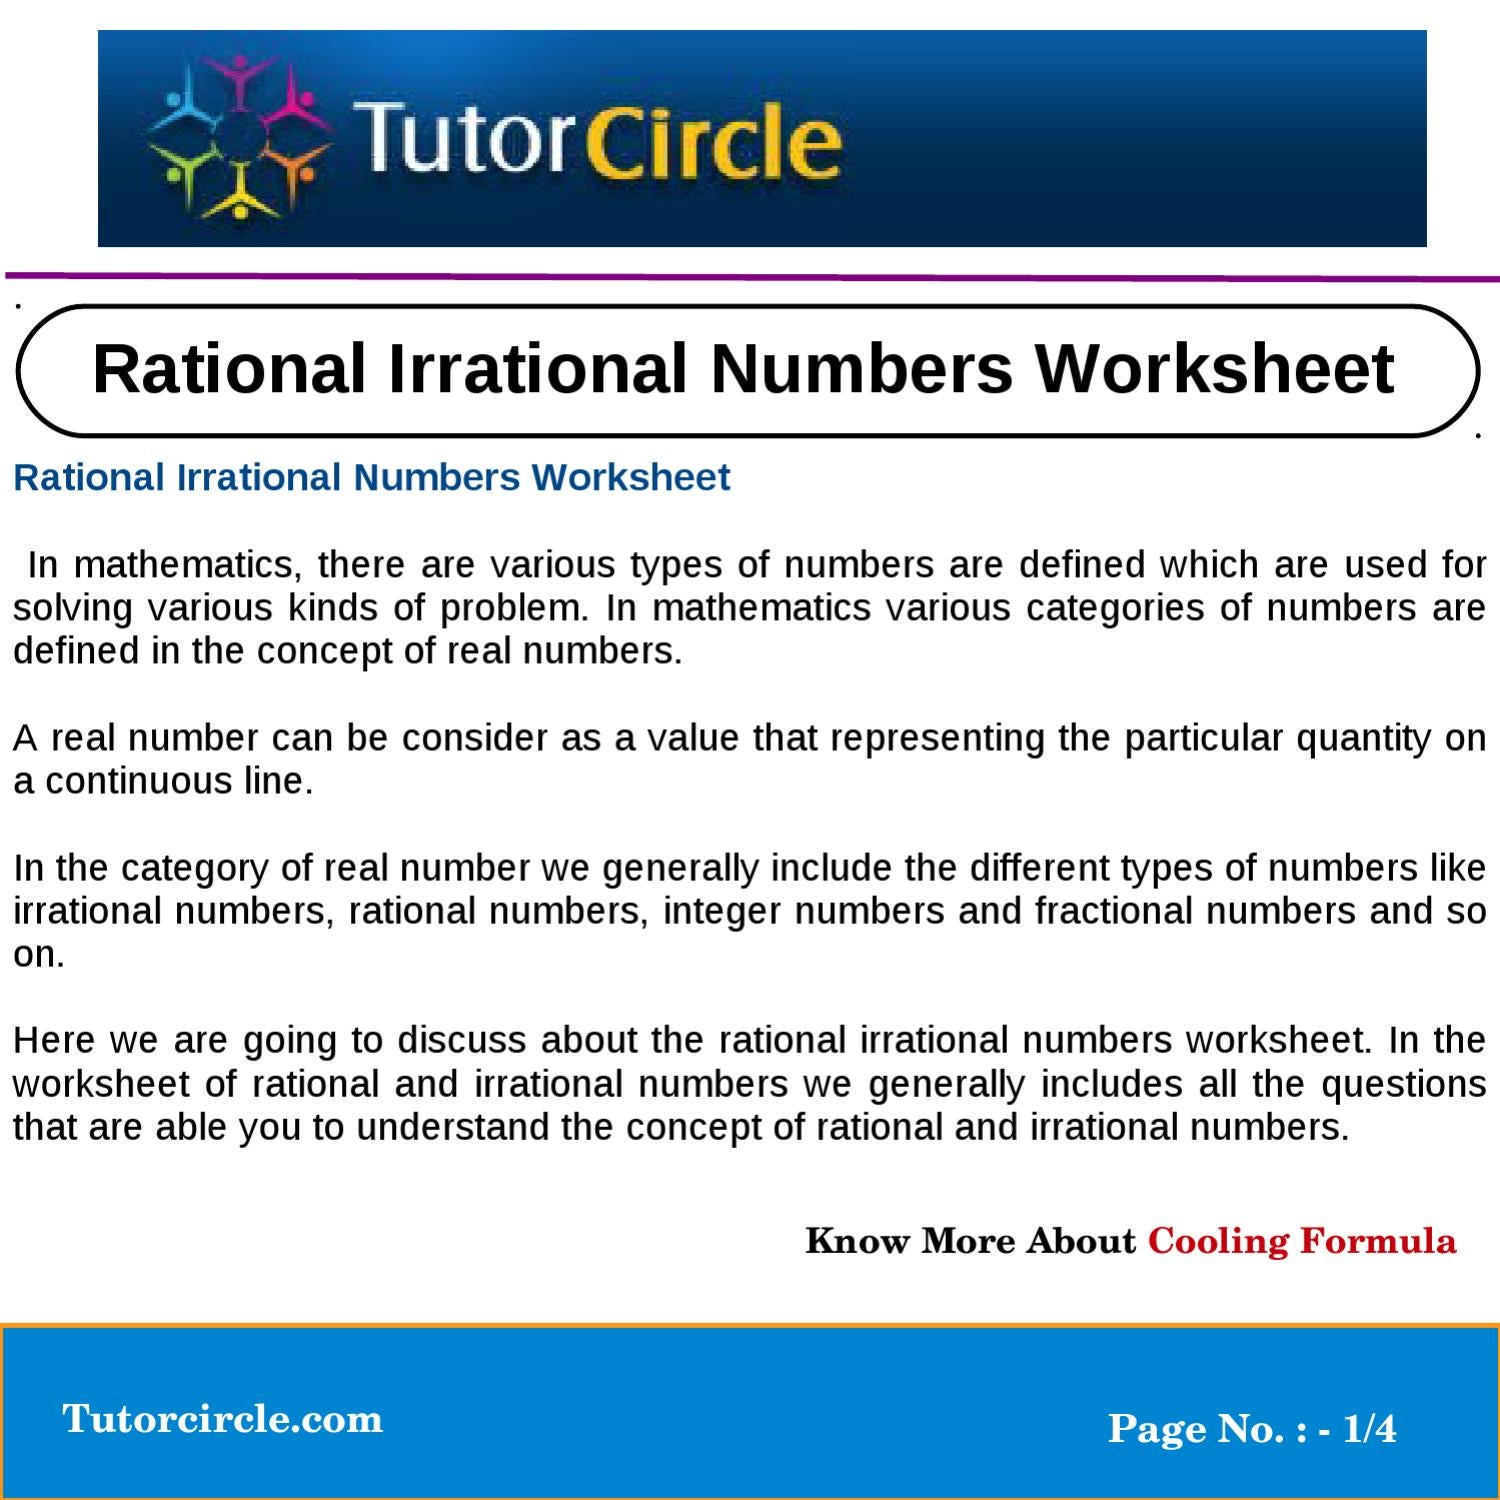 rational irrational numbers worksheet by tutorcircle team issuu - Rational And Irrational Numbers Worksheet